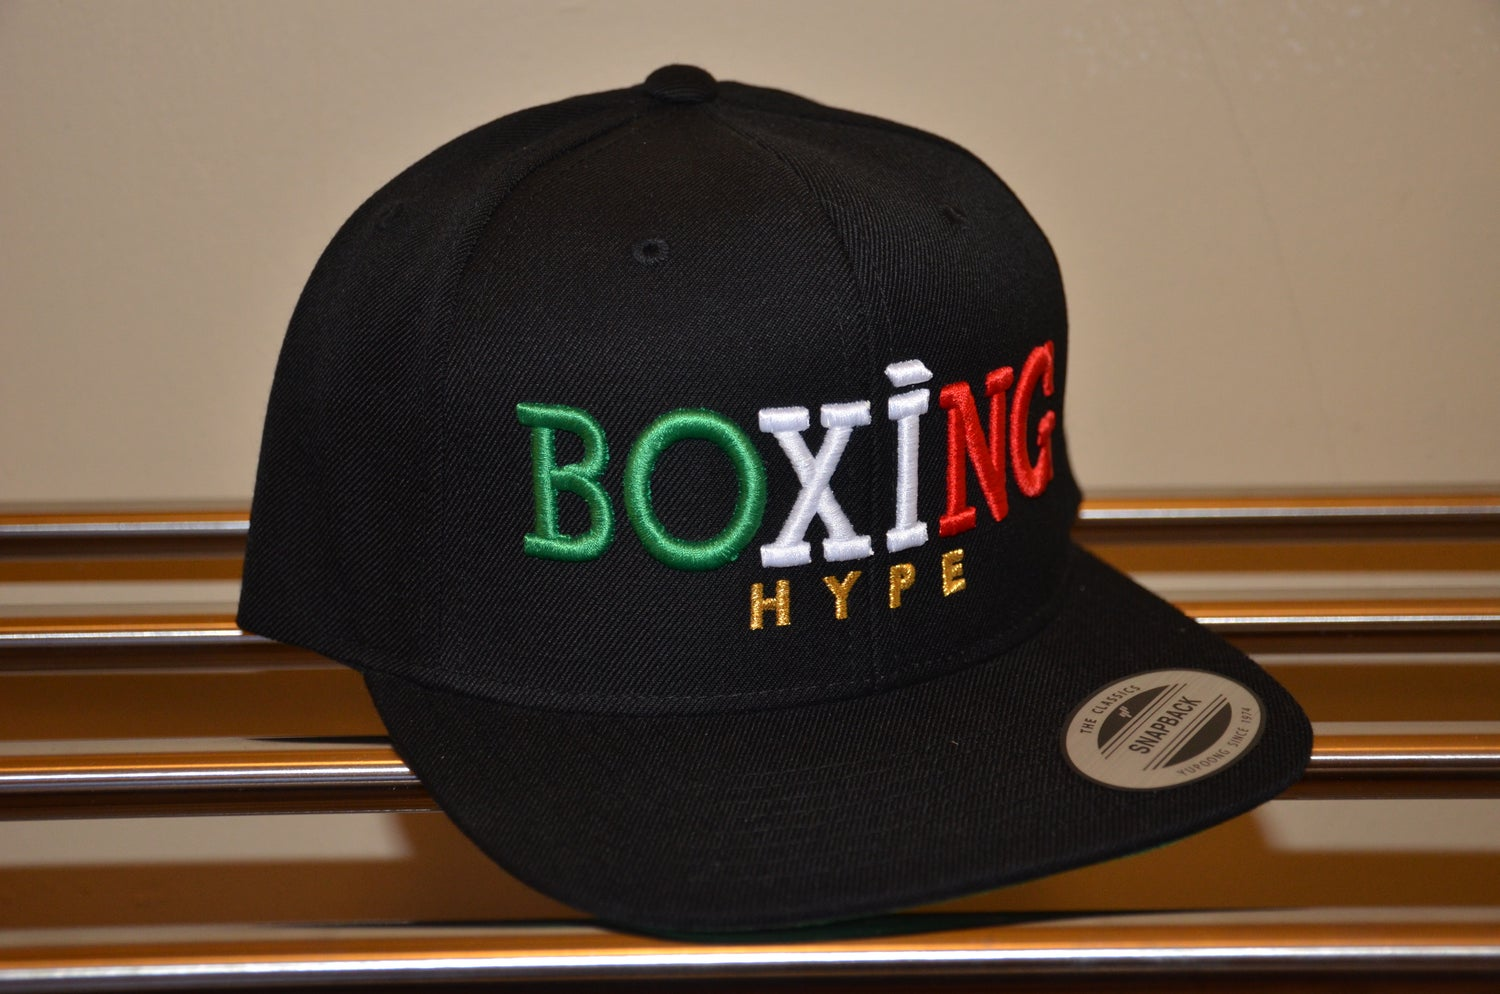 Image of RED In boxing we trust Snapbacks